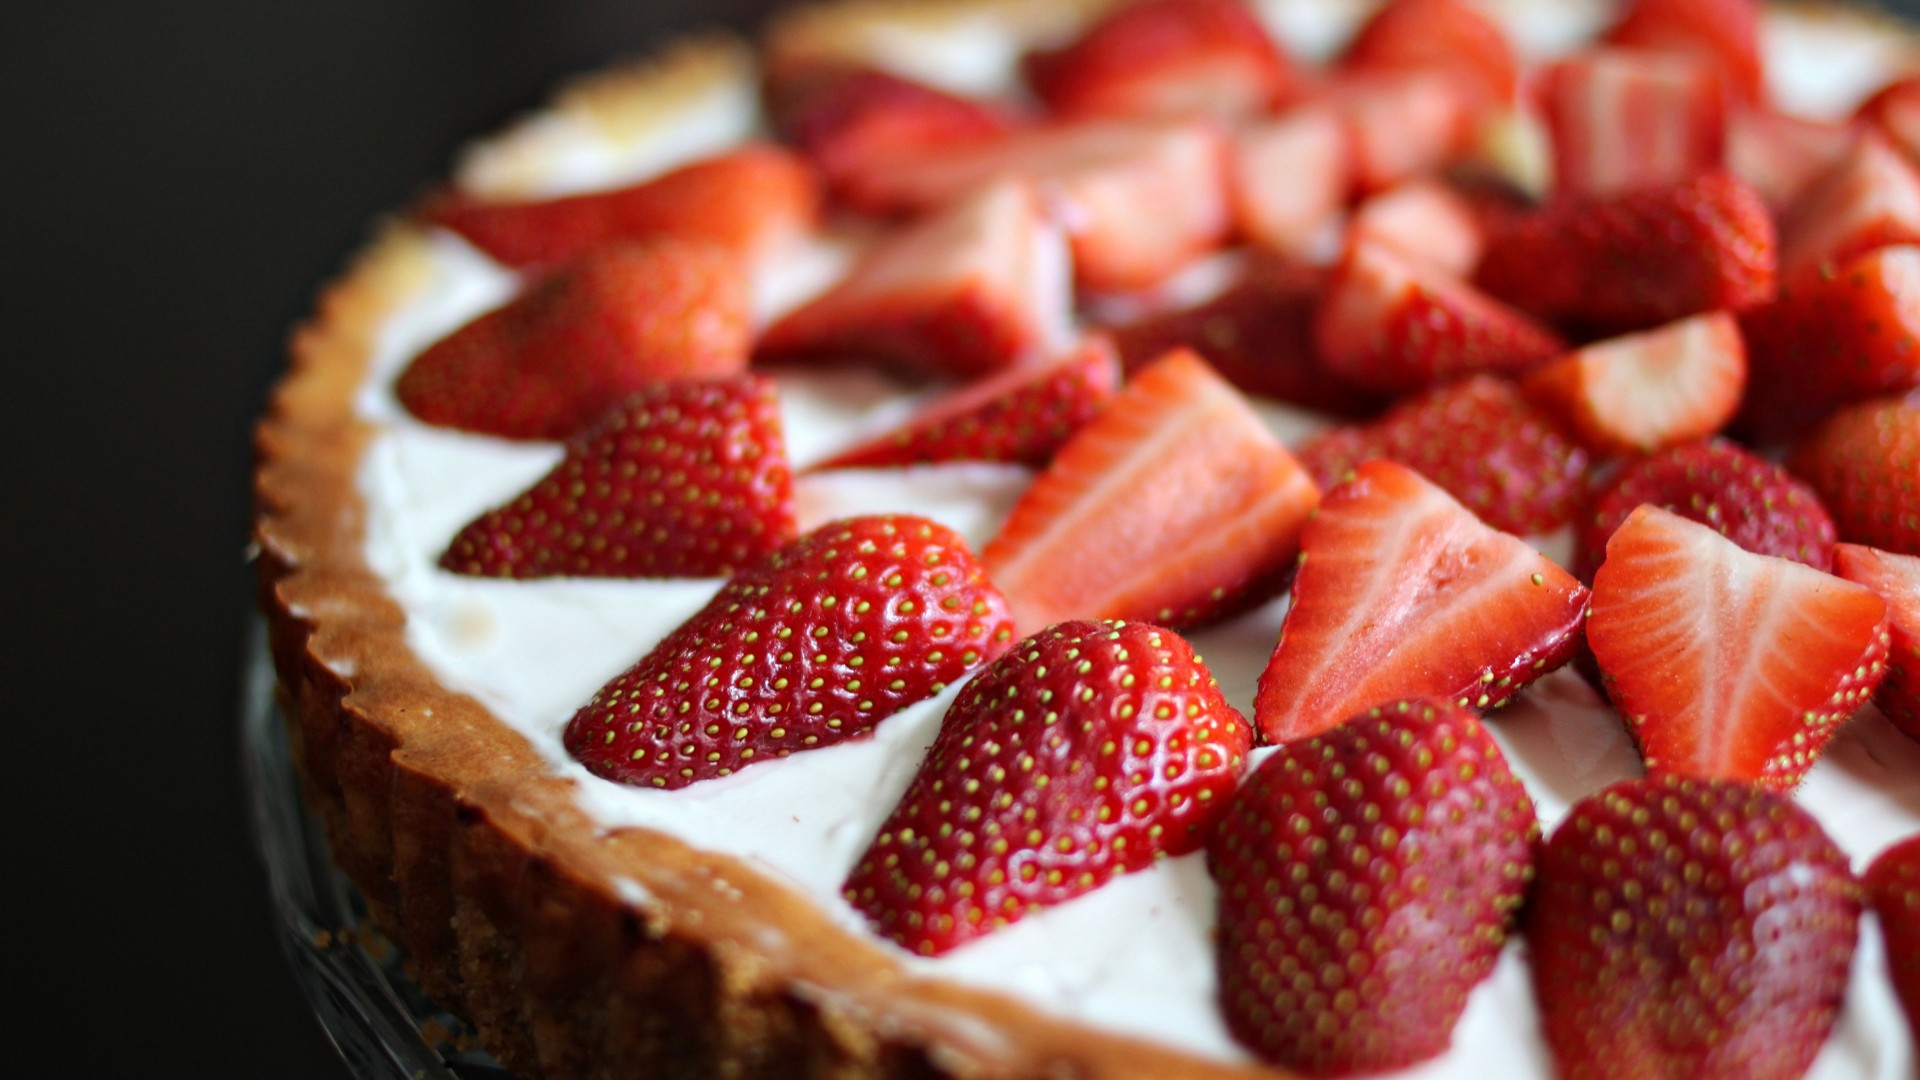 Tart, soufflé, strawberries (horizontal)